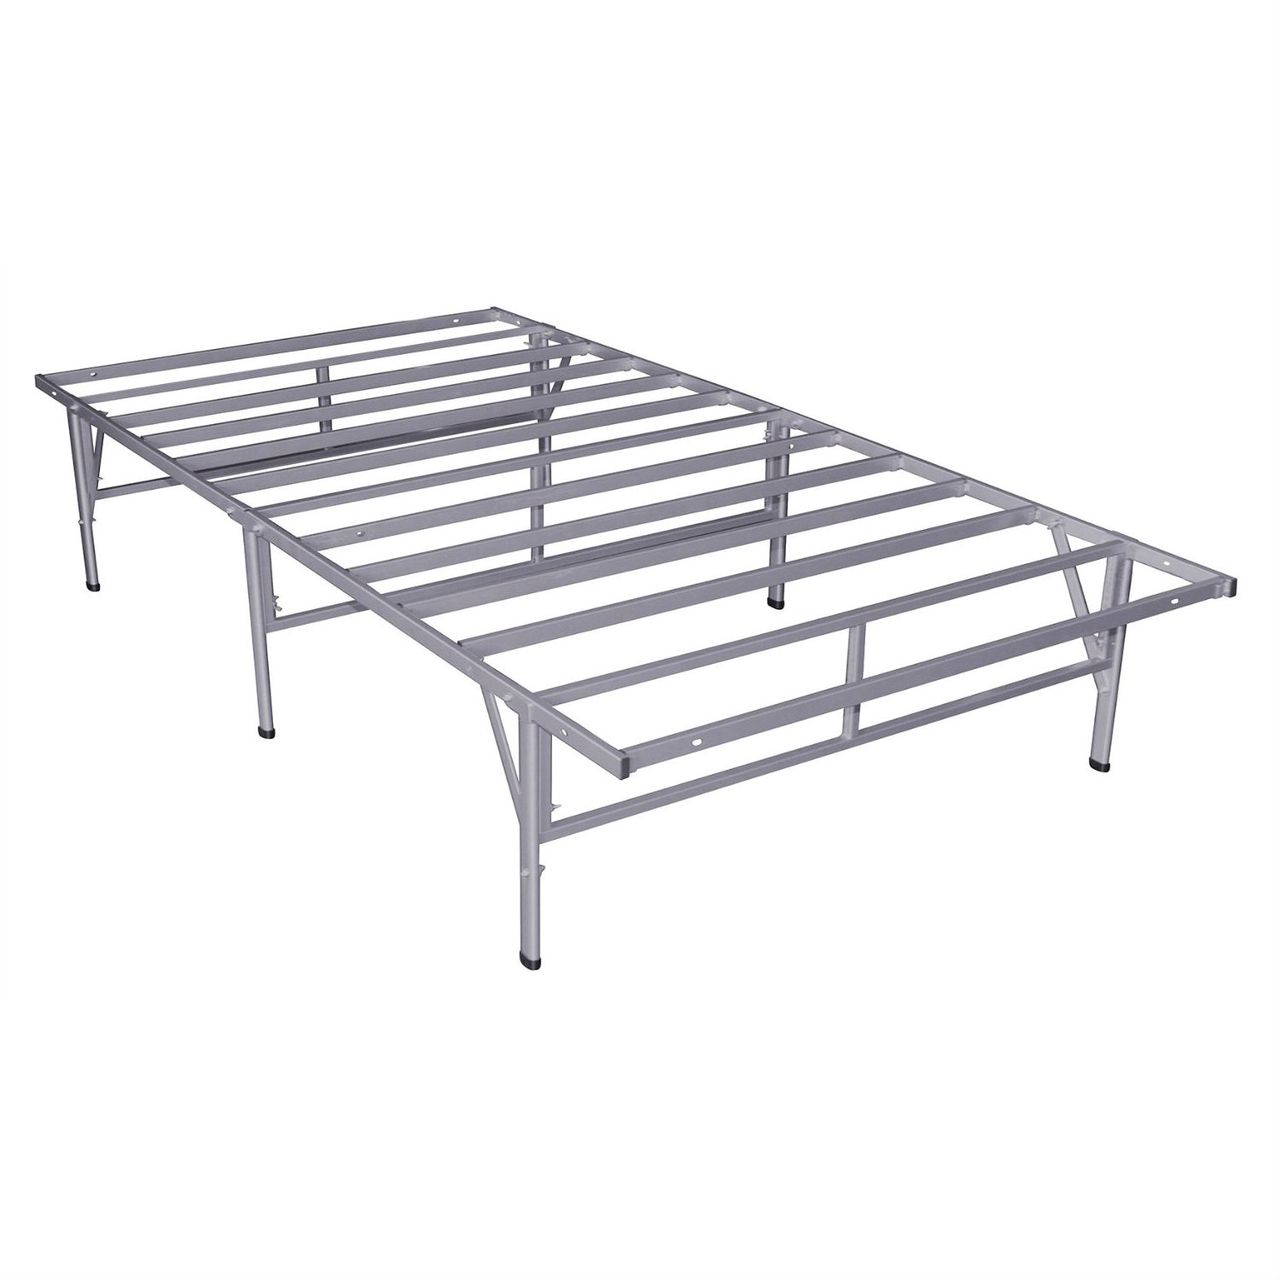 Twin Steel Platform Bed Frame in Silver Grey Metal Finish | Metal ...